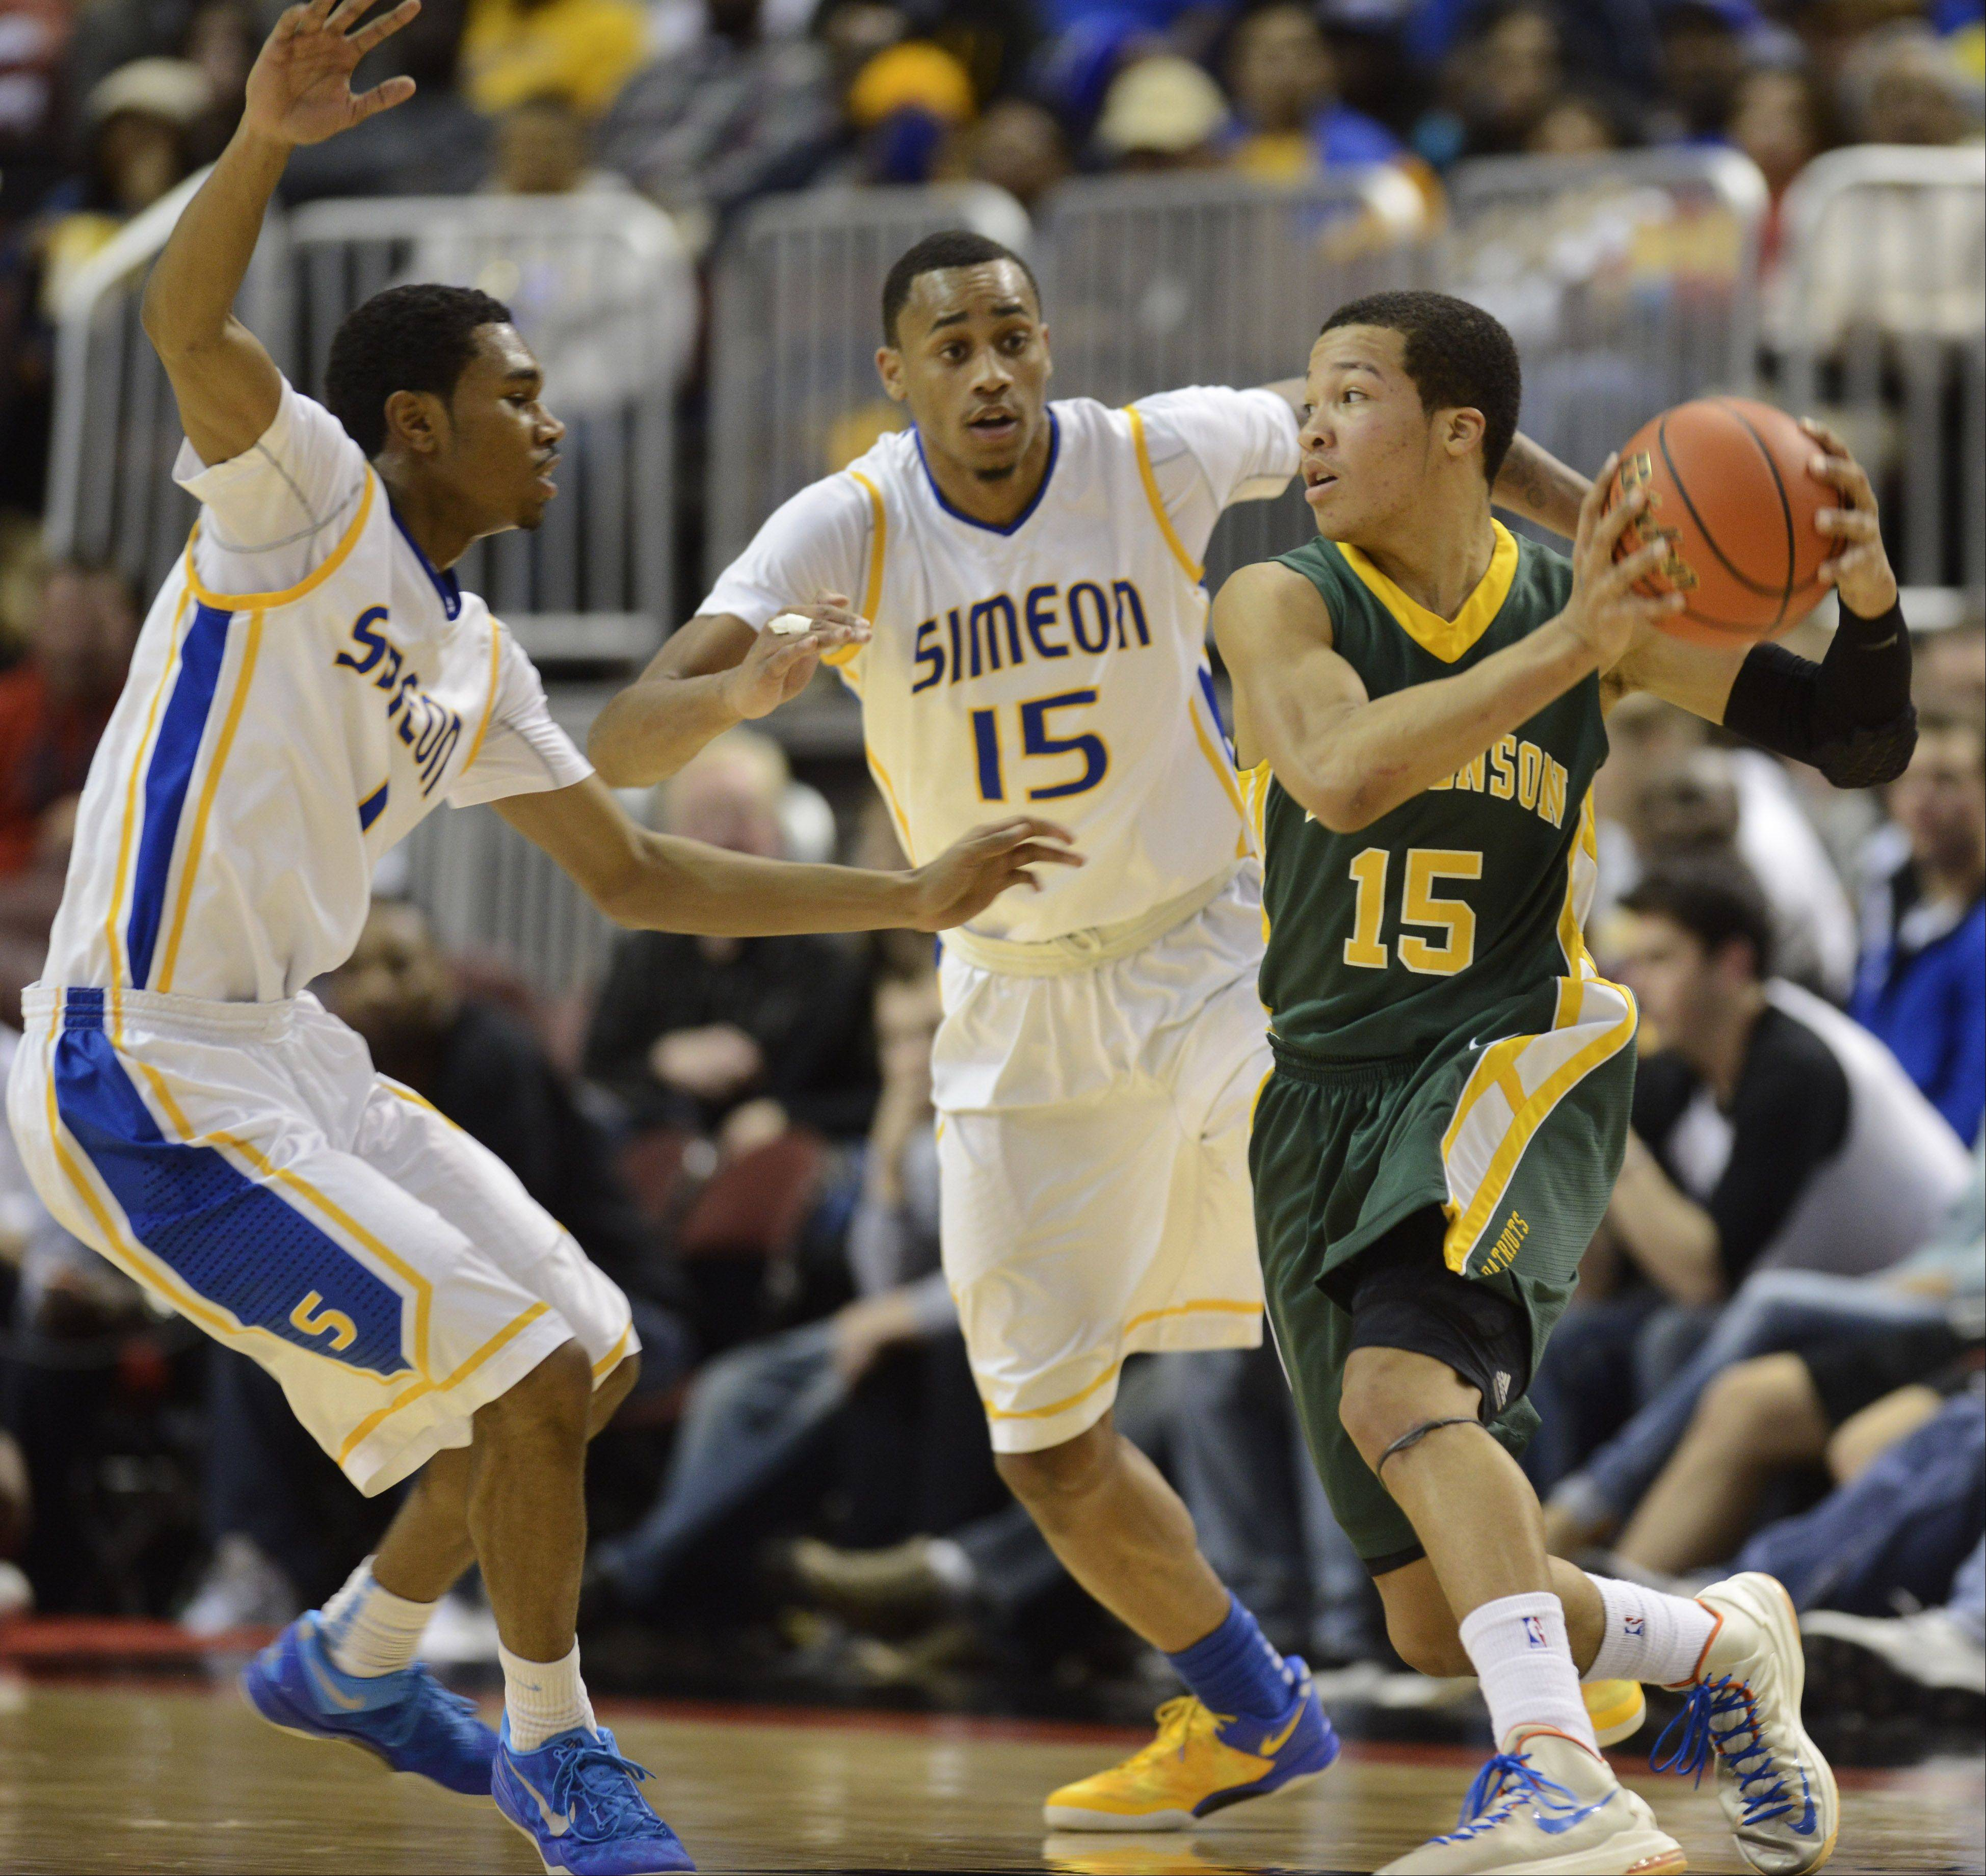 Stevenson's Jalen Brunson, right, gets double-teamed by Simeon's Jaylon Tate, left, and Russell Woods during the Class 4A boys basketball state finals at the Carver Arena in Peoria Saturday.